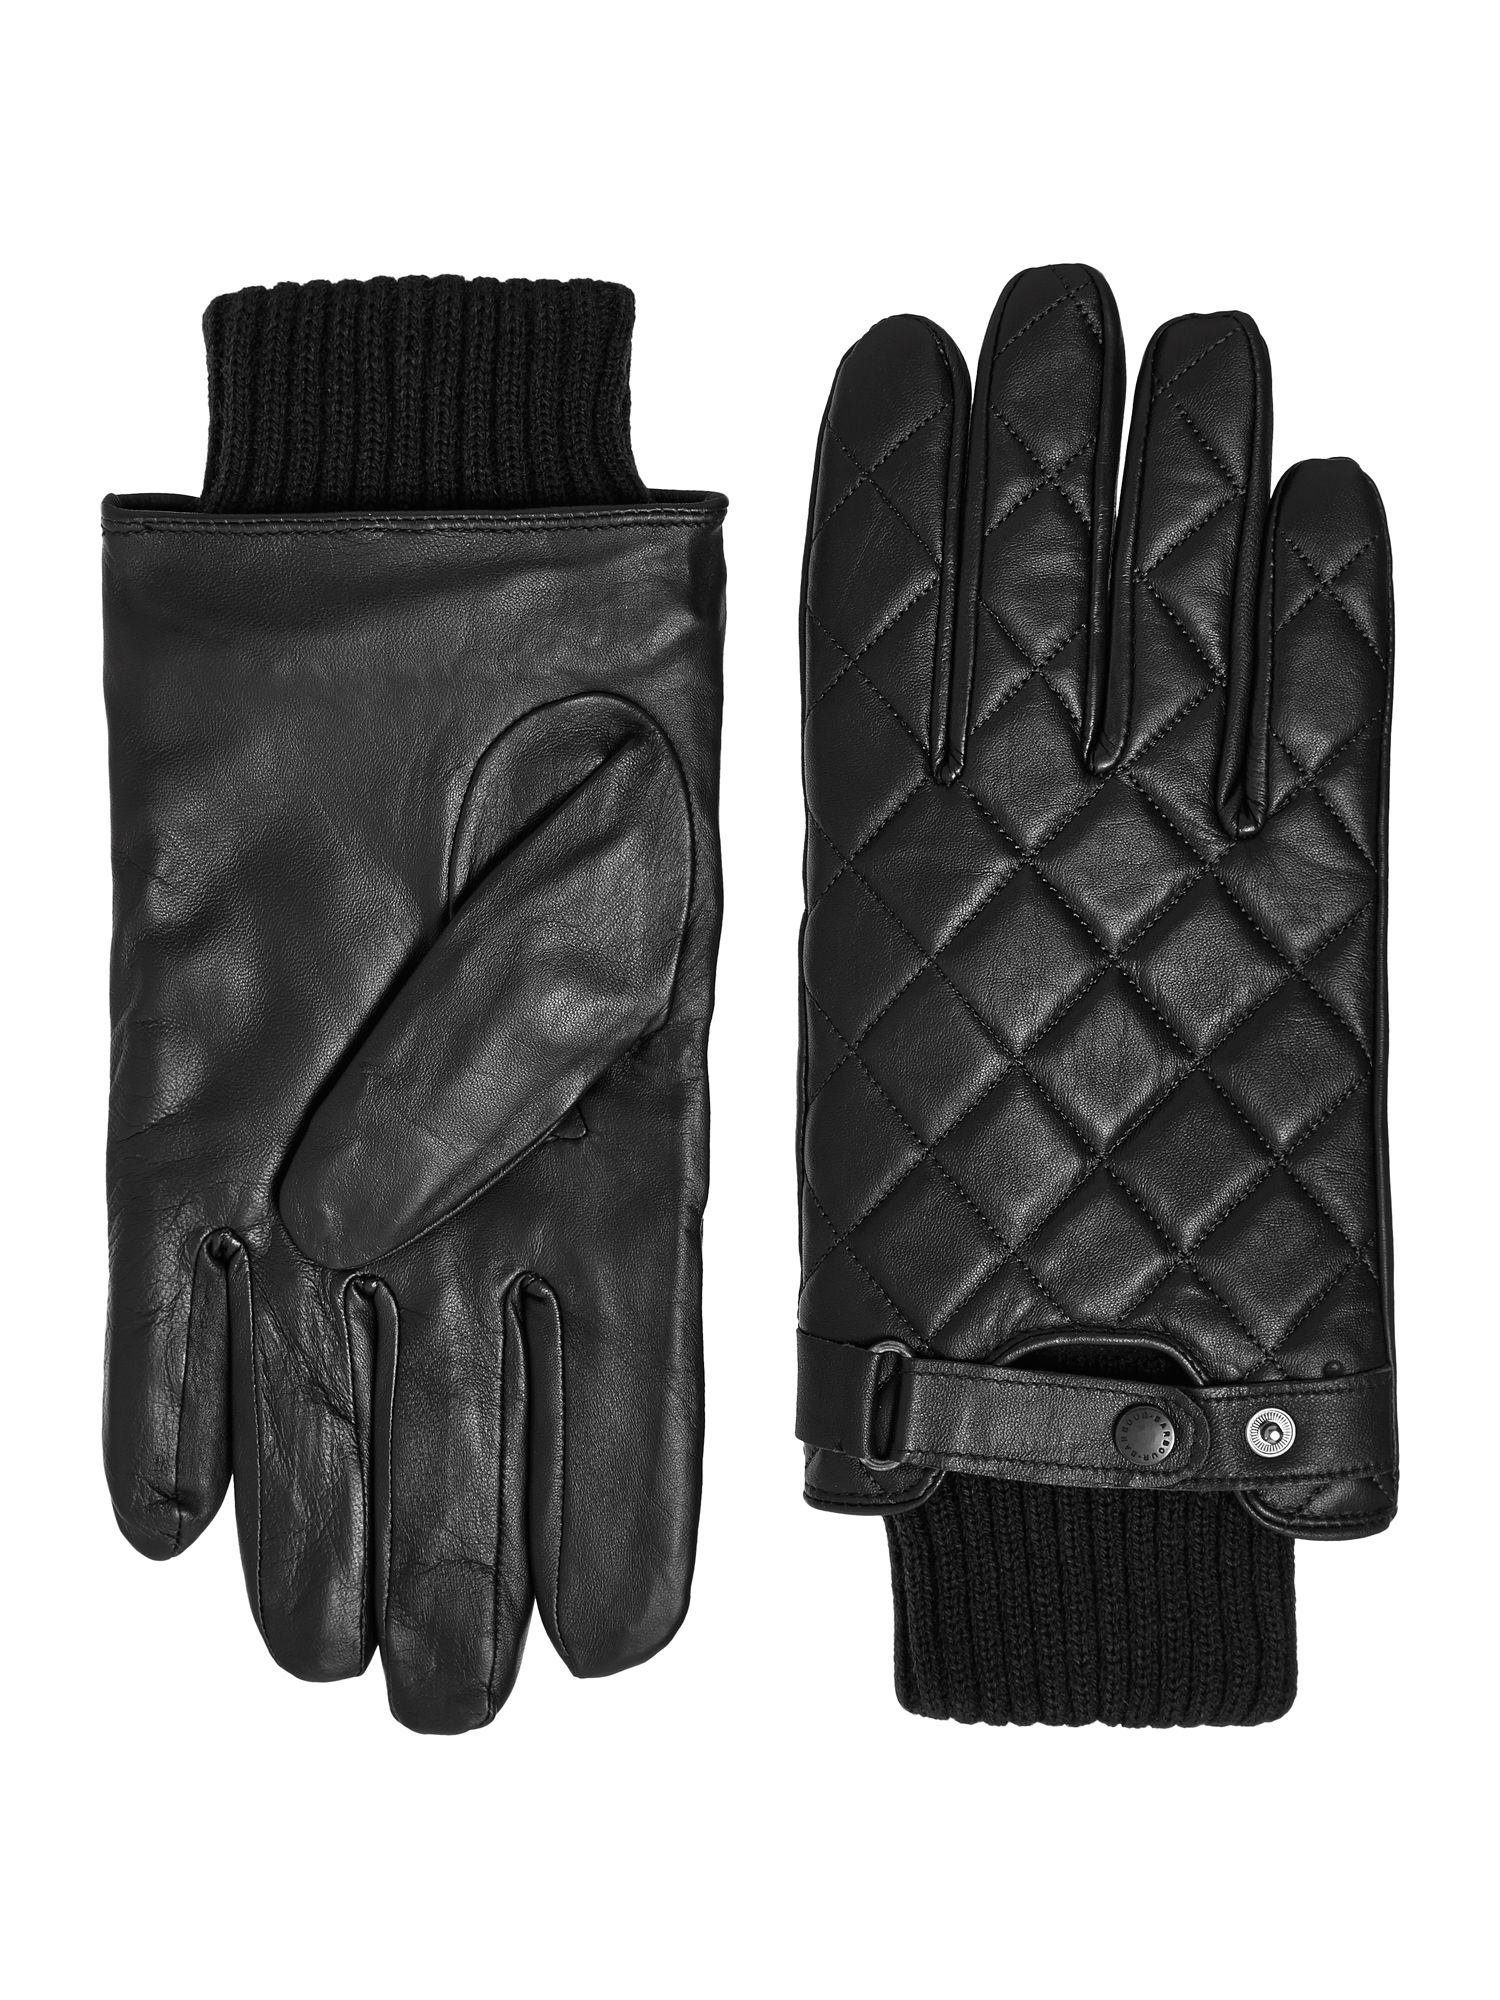 how to clean tanned leather gloves